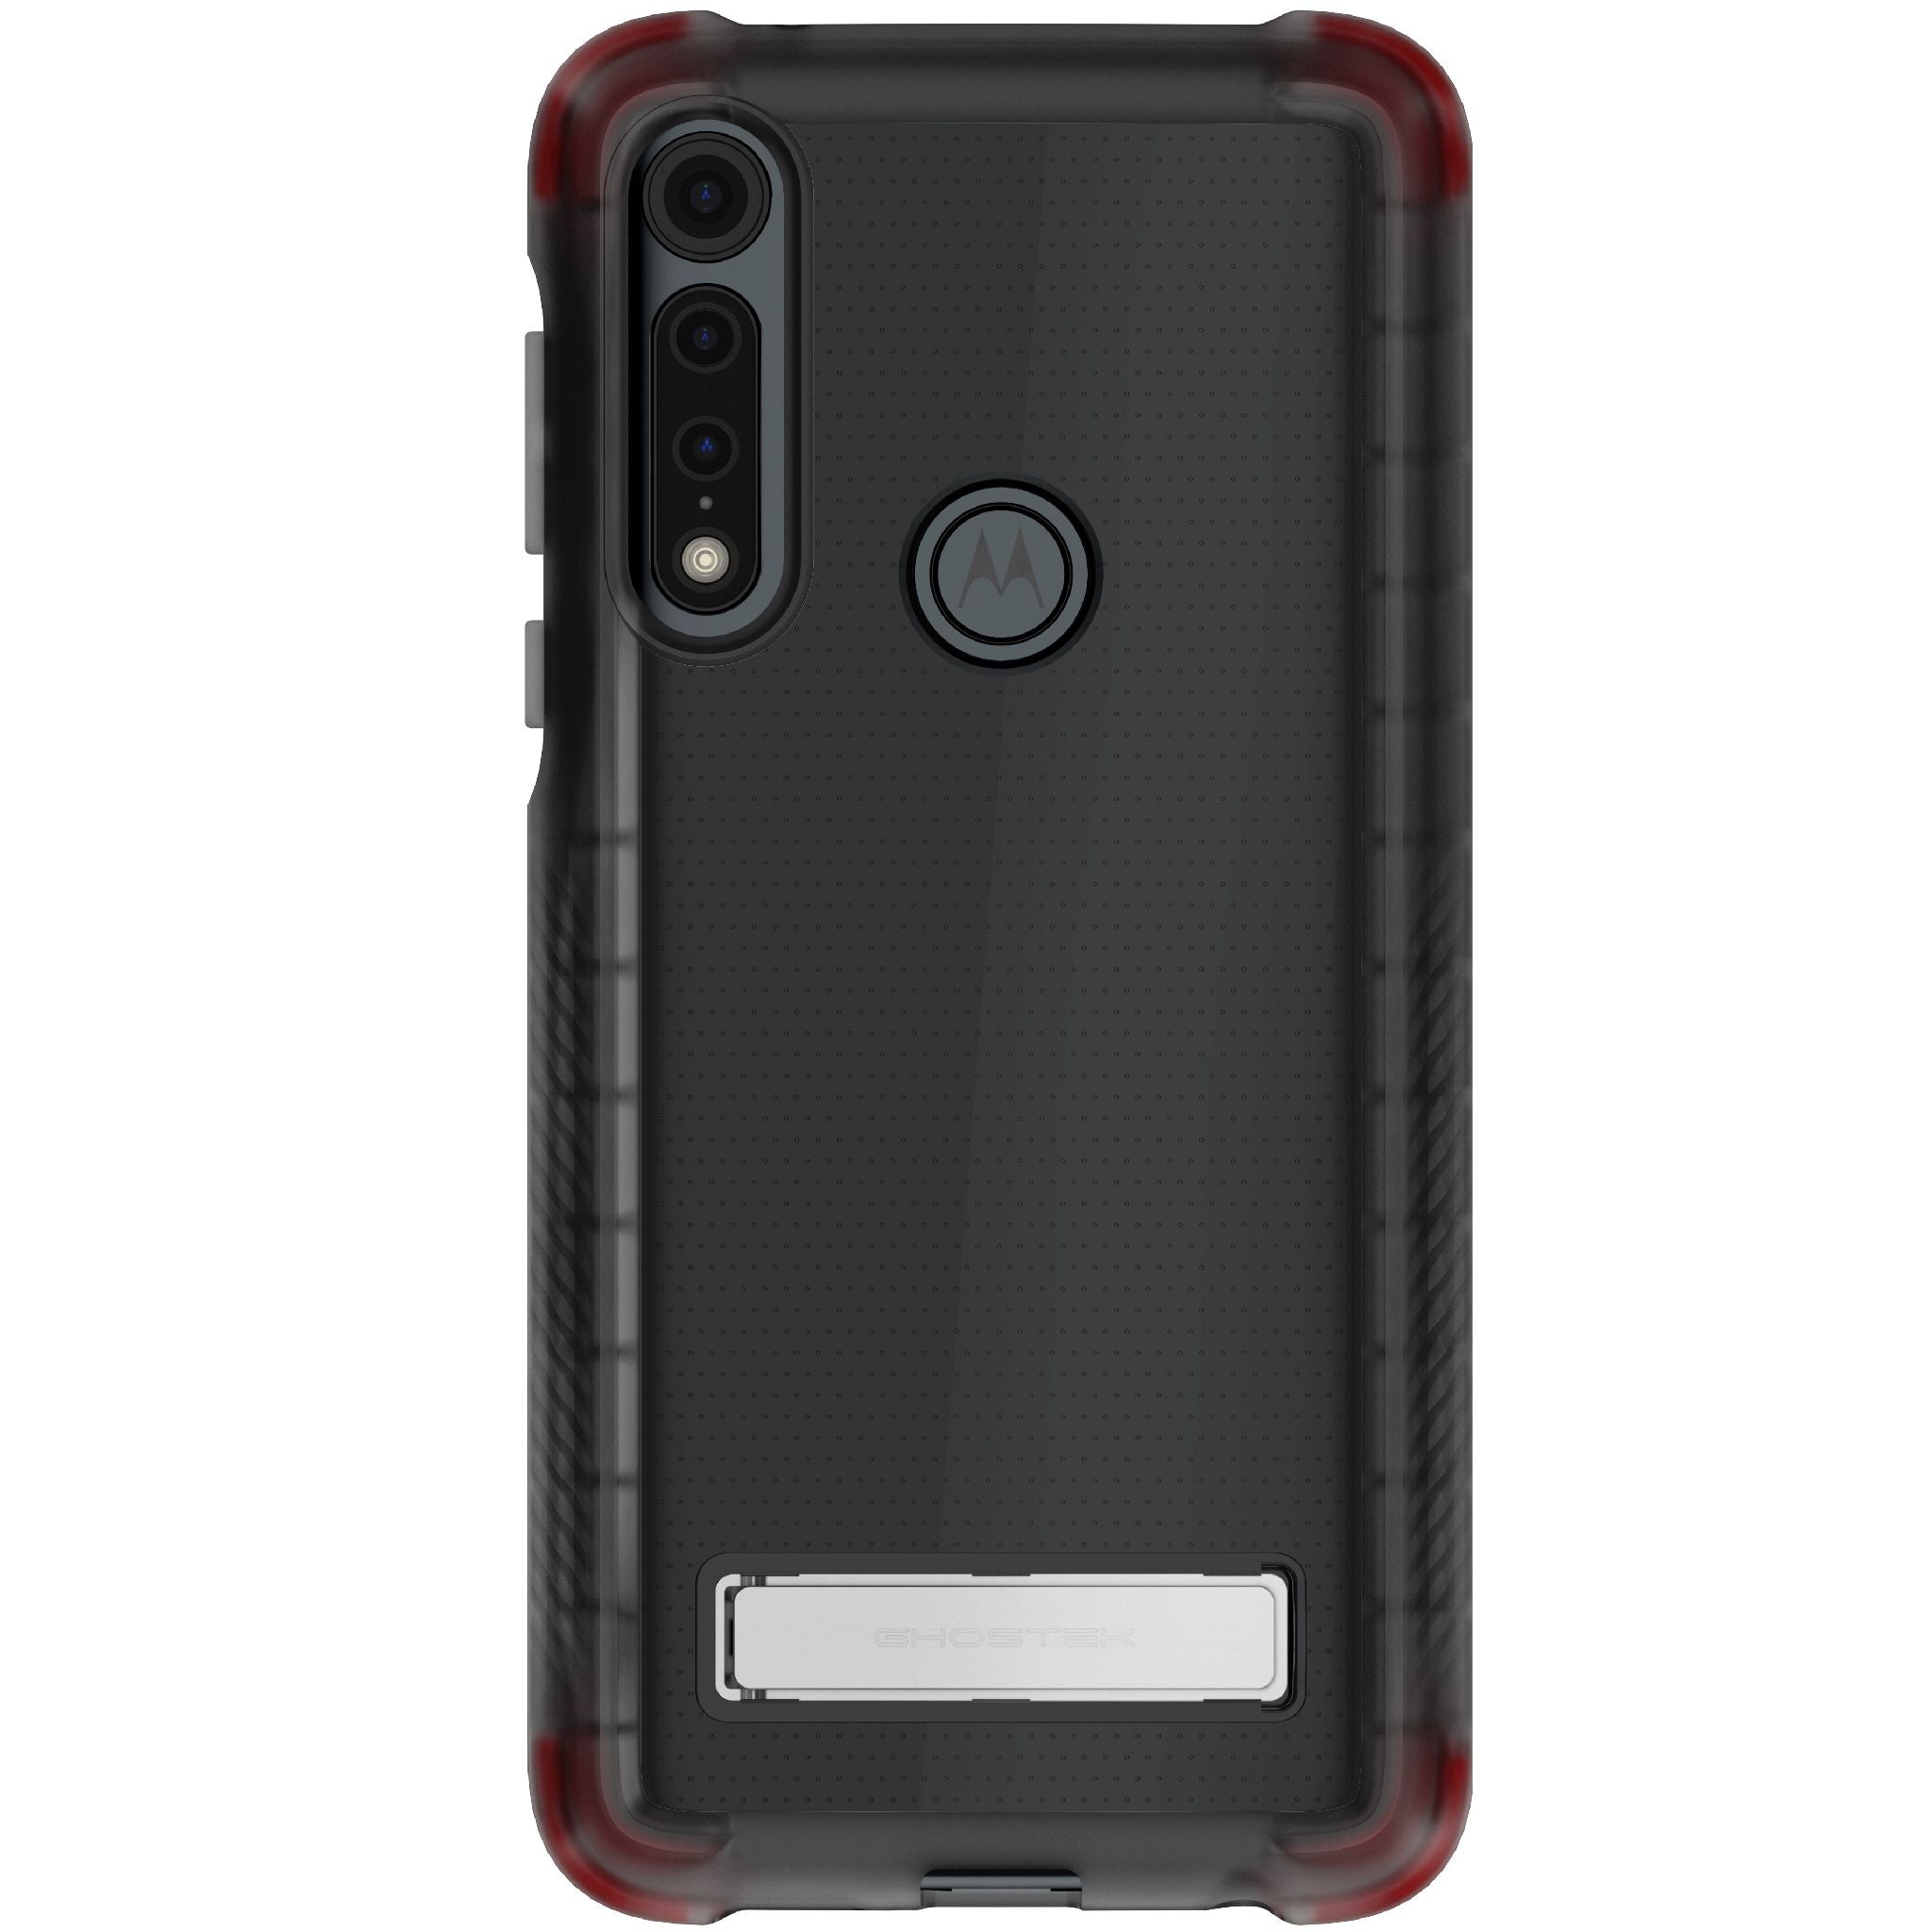 Moto G Power Case | COVERT 4 Case | UVIYO CASES